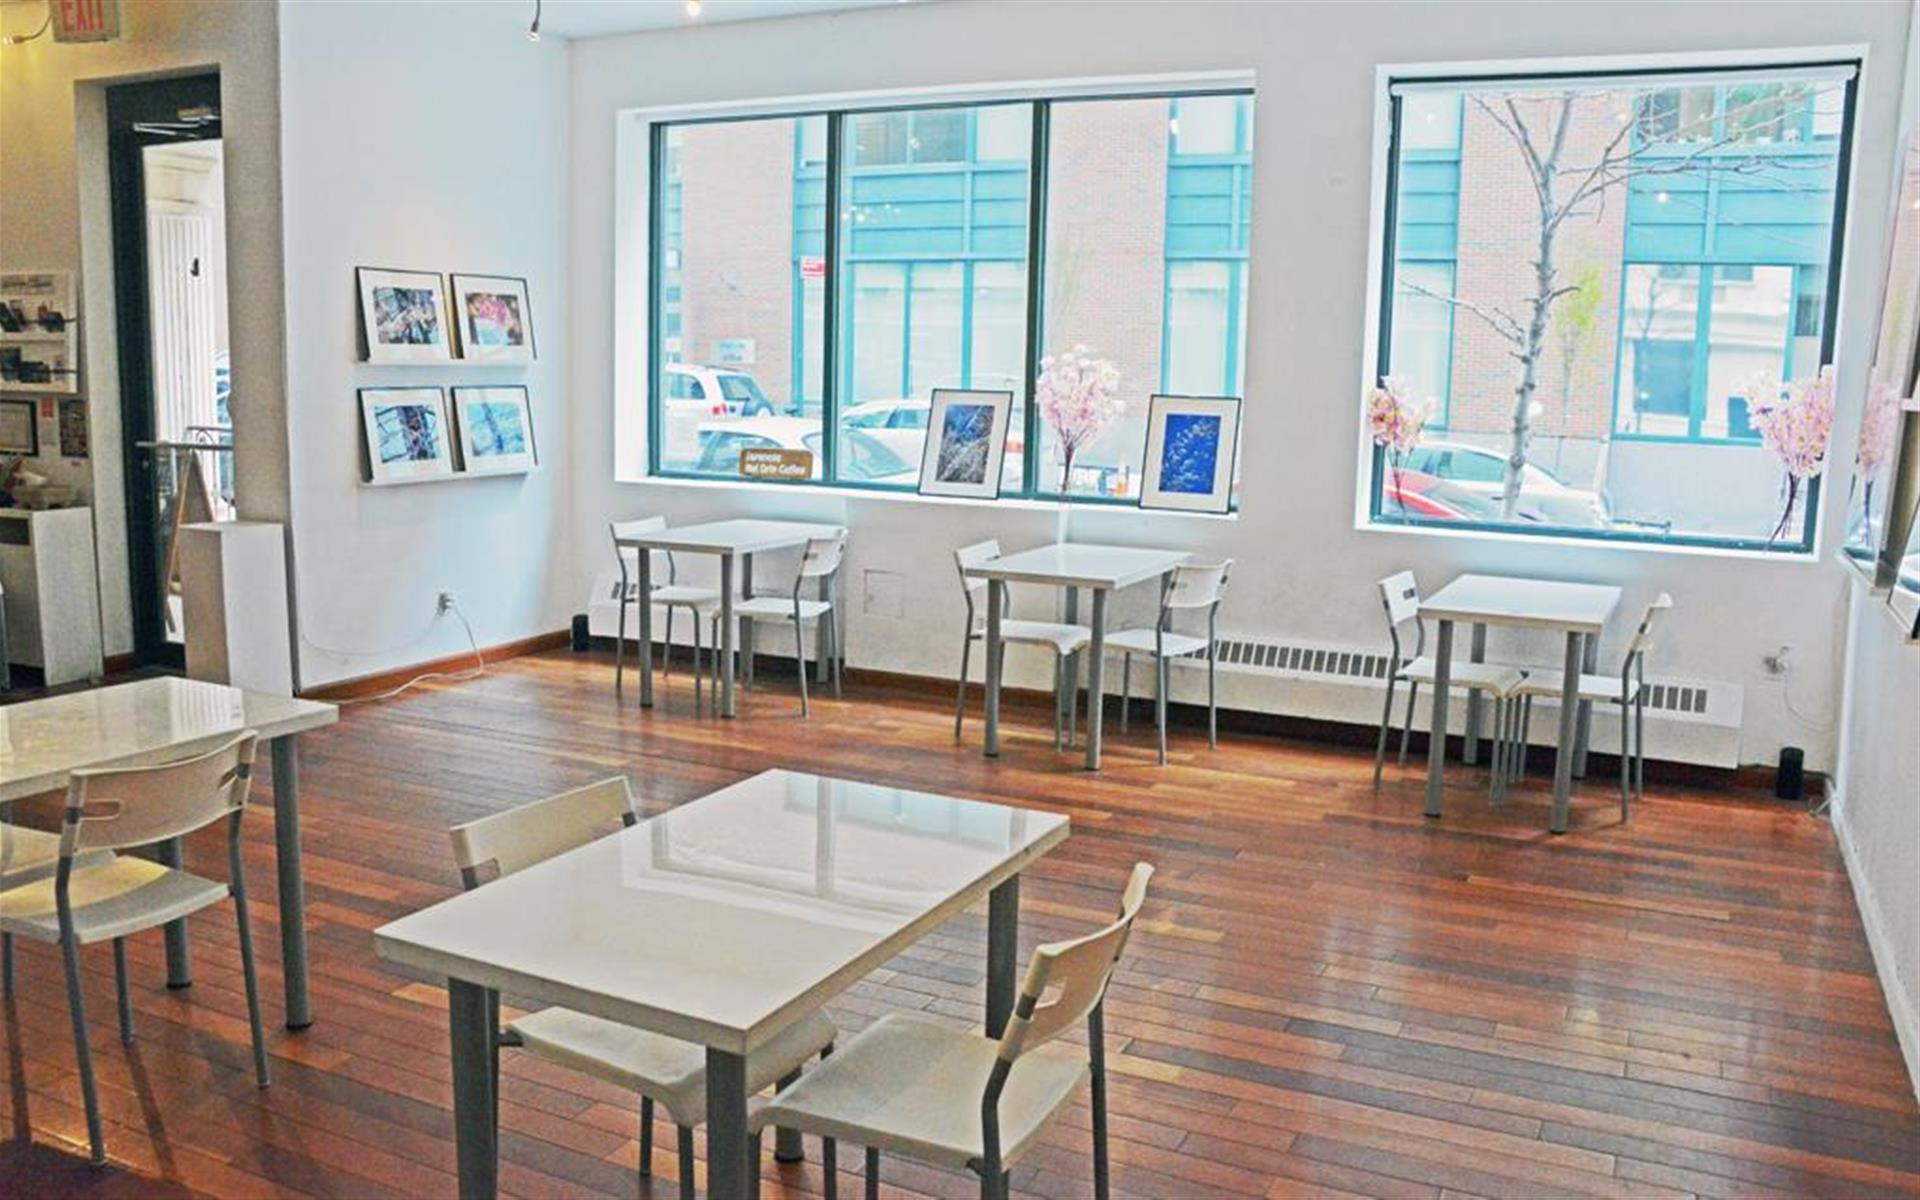 RESOBOX Gallery & Cafe - Multi-use event space